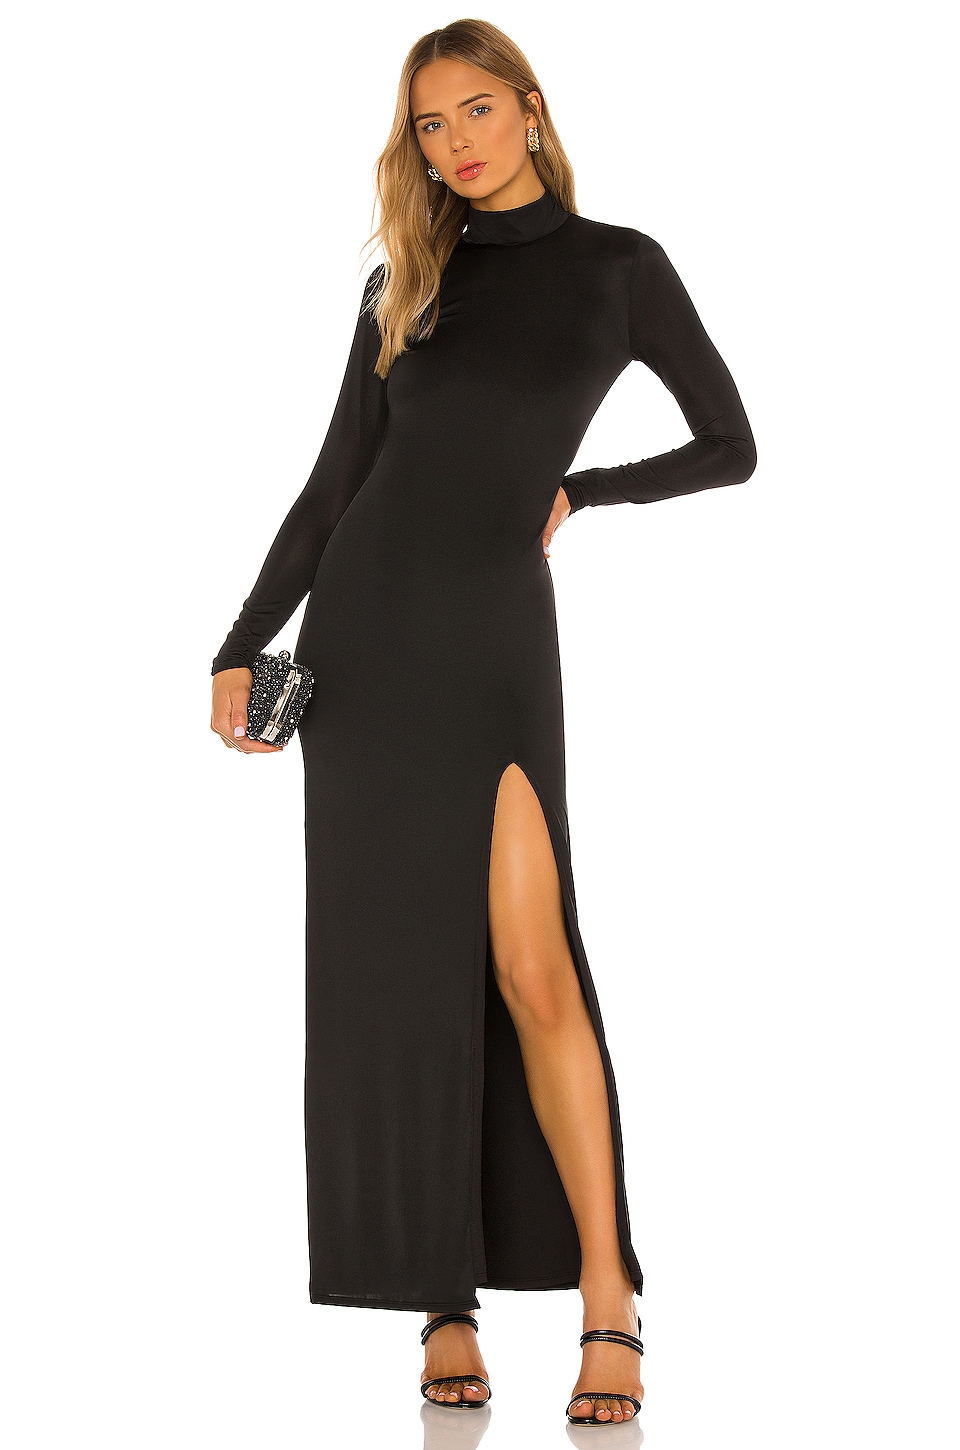 House Of Harlow 1960 X Revolve Marion Maxi Dress In Black Revolve Shop floral, lace, bodycon styles & more. house of harlow